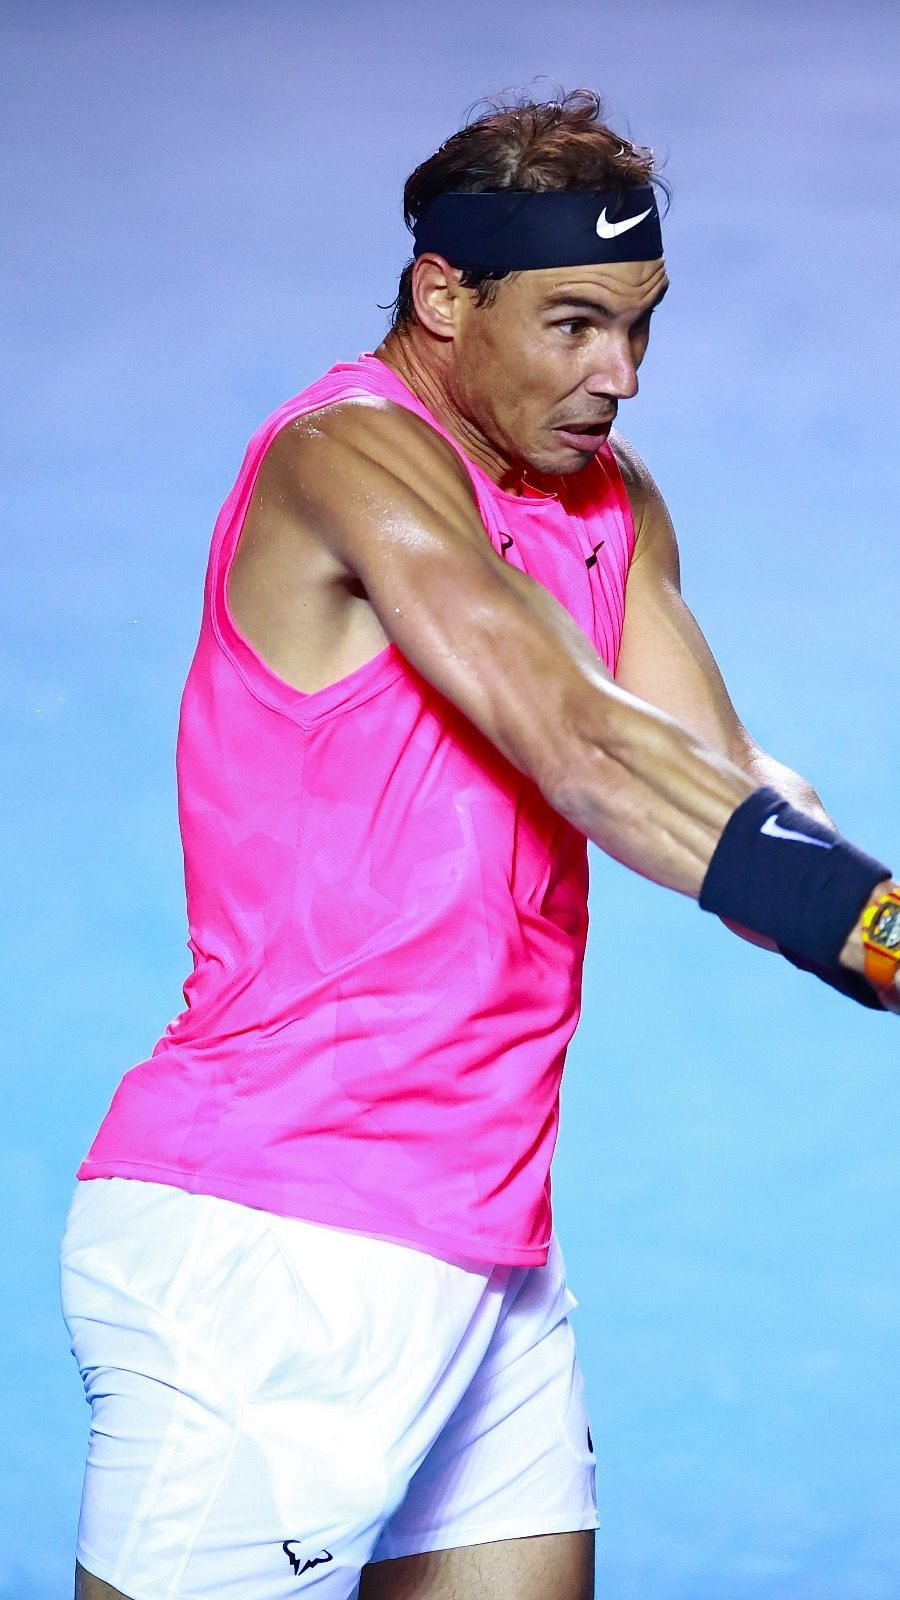 Rafael Nadal S Uncle Toni Explains Why Pablo Cuevas Was A Difficult Opponent For The King Of Clay